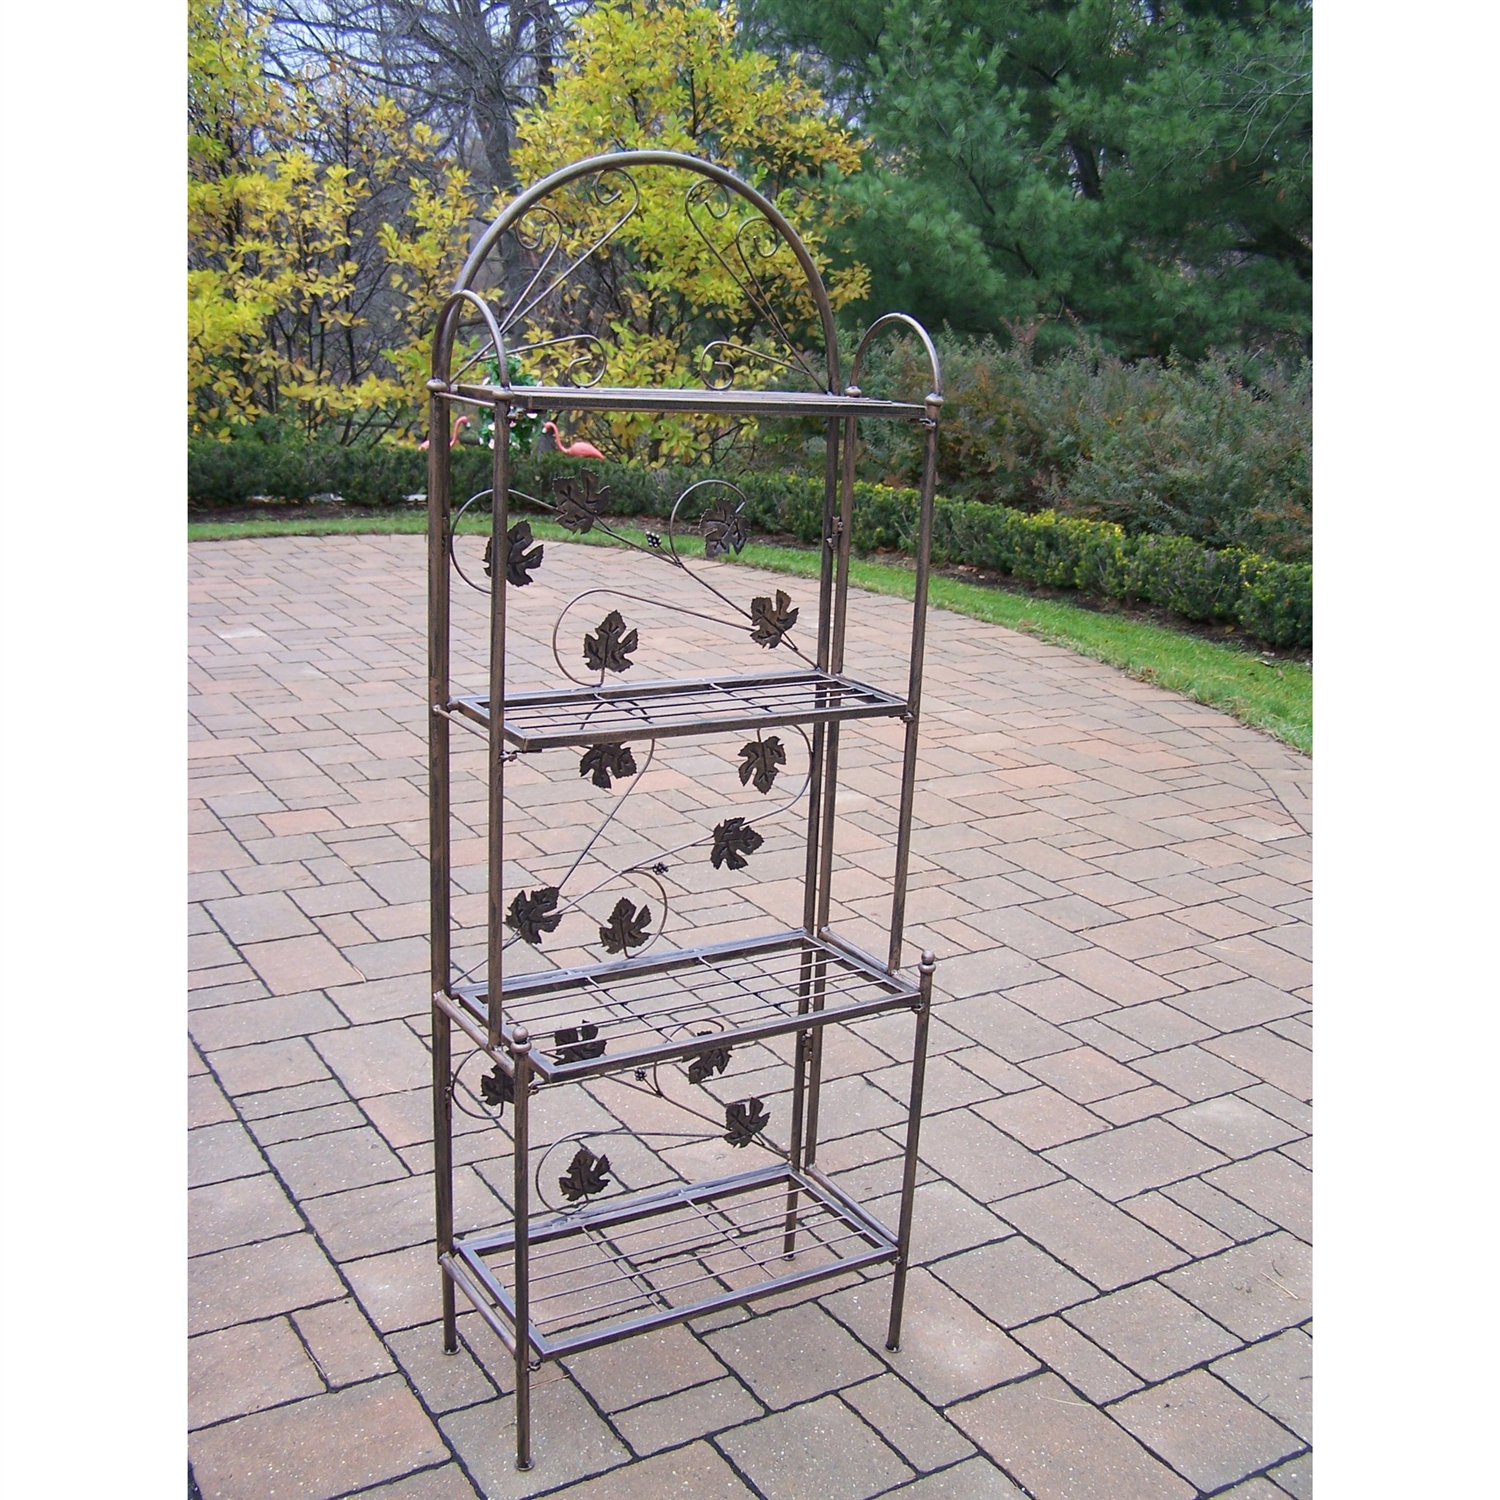 This Cast Iron Bakers Rack with Grape Vine Design in Antique Bronze is the perfect edition to any setting. Adds beauty and style both indoors and out while having functionality. Features a hardened powder coat finish for years of beauty. Distressed: No; Number of Tiers: 4 Tiers; Product Category: Baker's Racks; Style: Traditional; Type: Standard